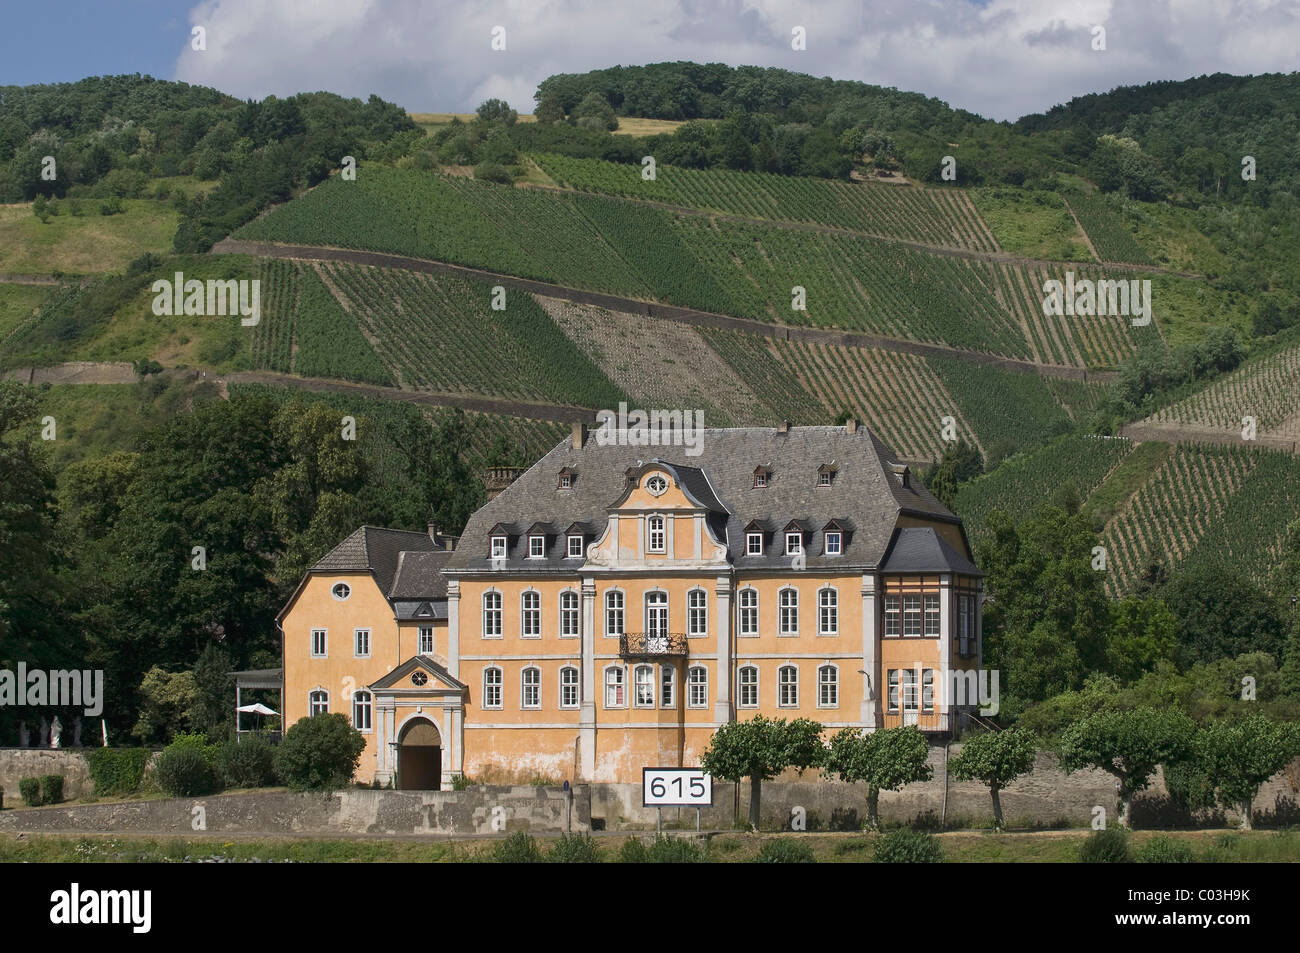 Schloss Marienburg, baroque palace in front of vineyards, Leutesdorf, Rhine River, Rhineland-Palatinate, Germany, - Stock Image